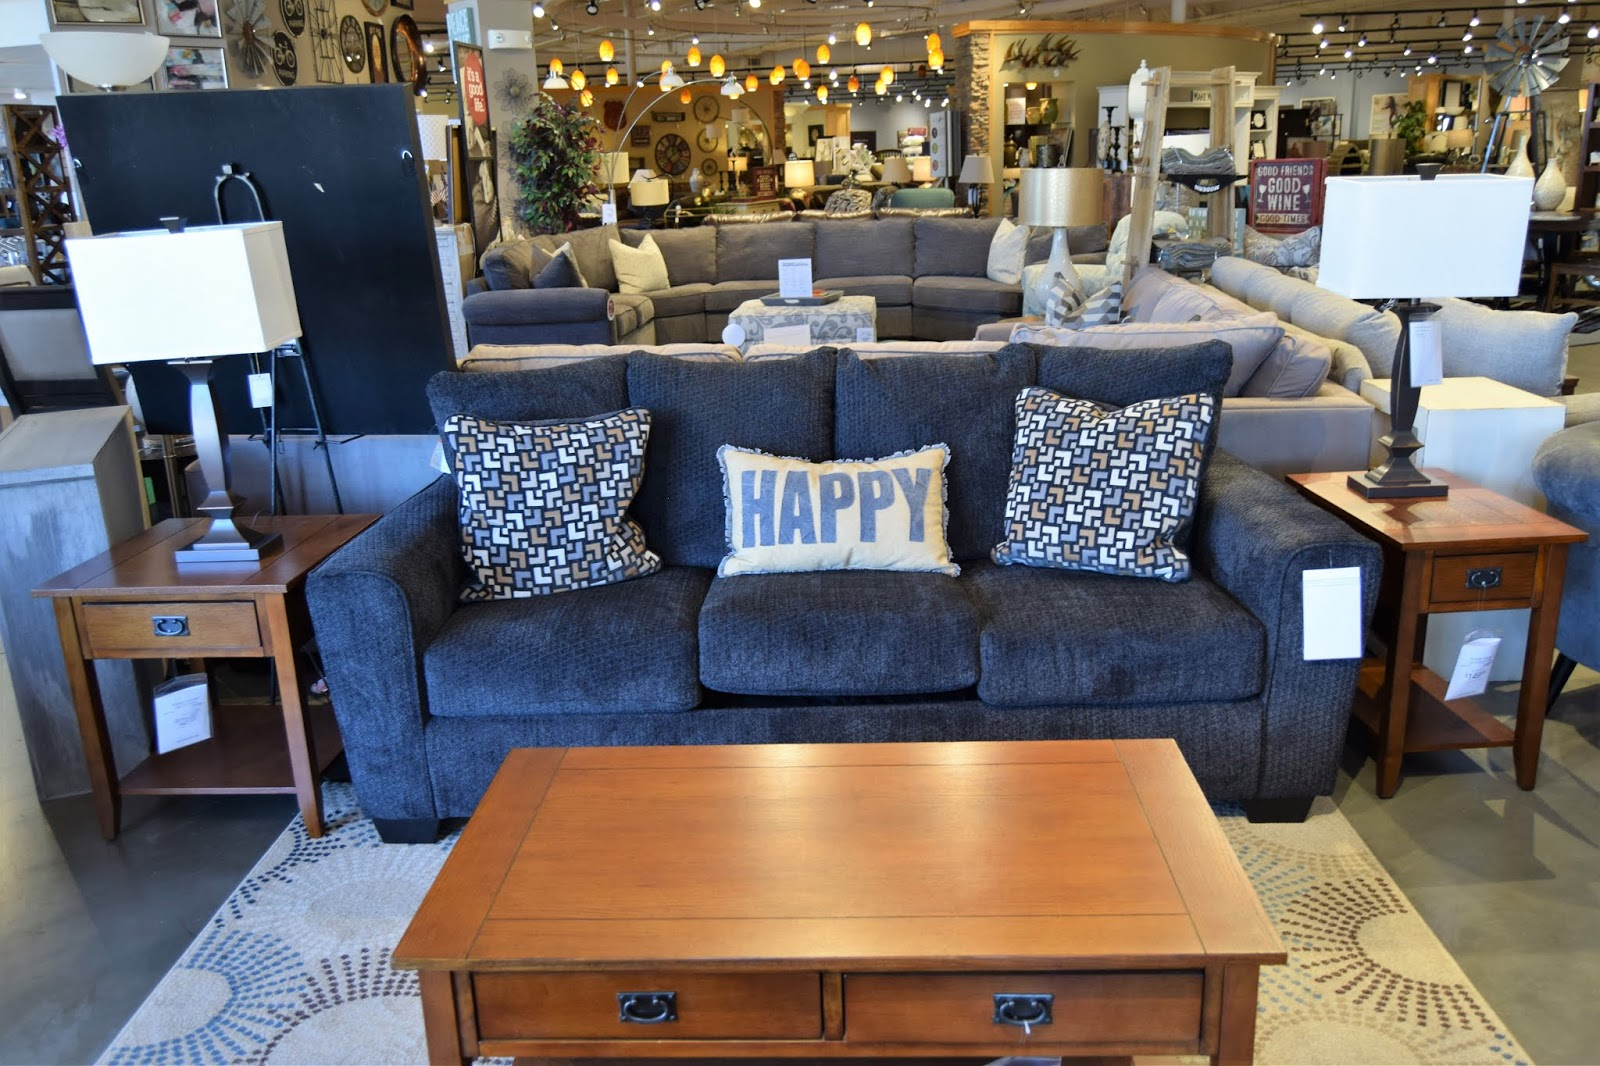 Slumberland Accent Chairs With Arms.Slumberland Furniture Store Osage Beach Mo June 2018